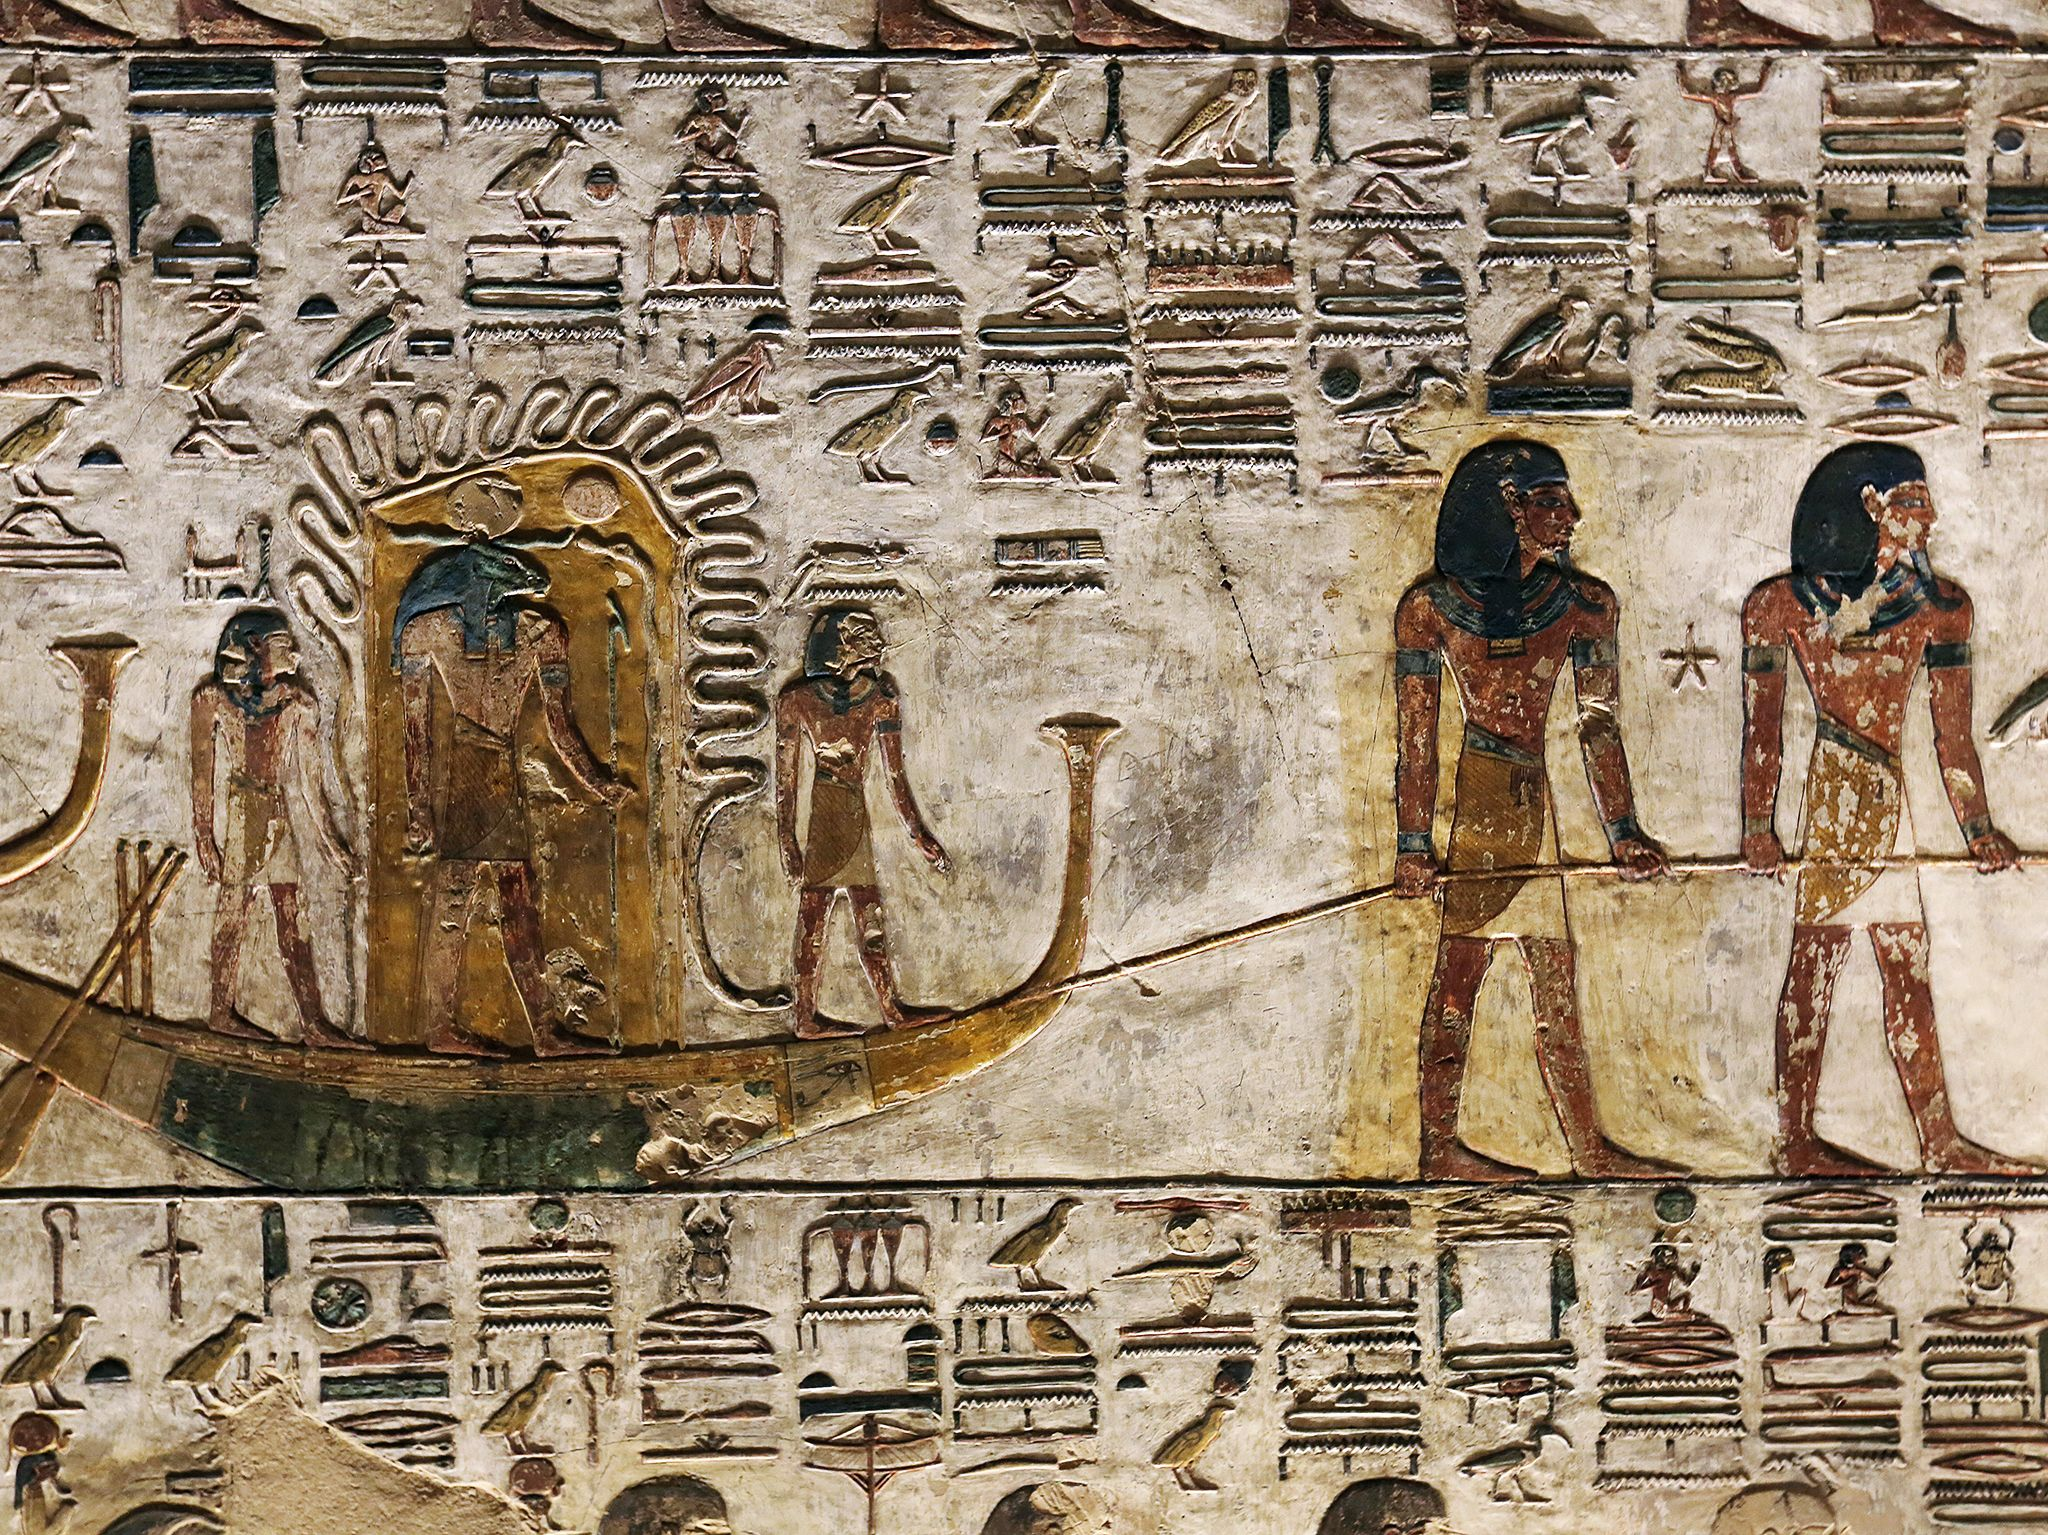 Luxor, Egypt:  Tomb detail. This image is from Lost Treasures of Egypt. [Foto del giorno - March 2019]